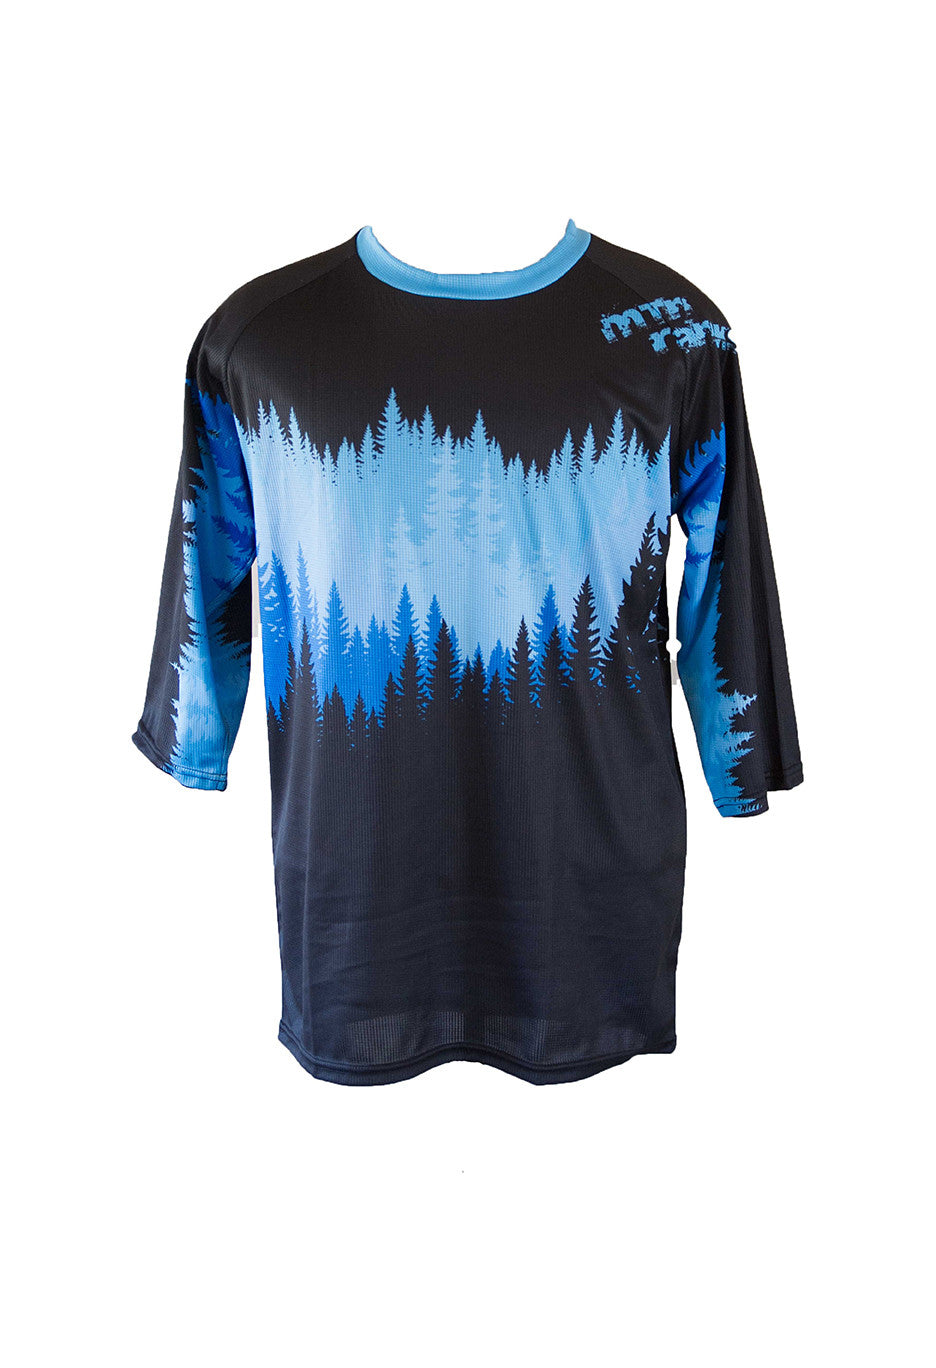 MtnRanks Tree Line 3/4 sleeve downhill enduro mtb mountain bike jersey front